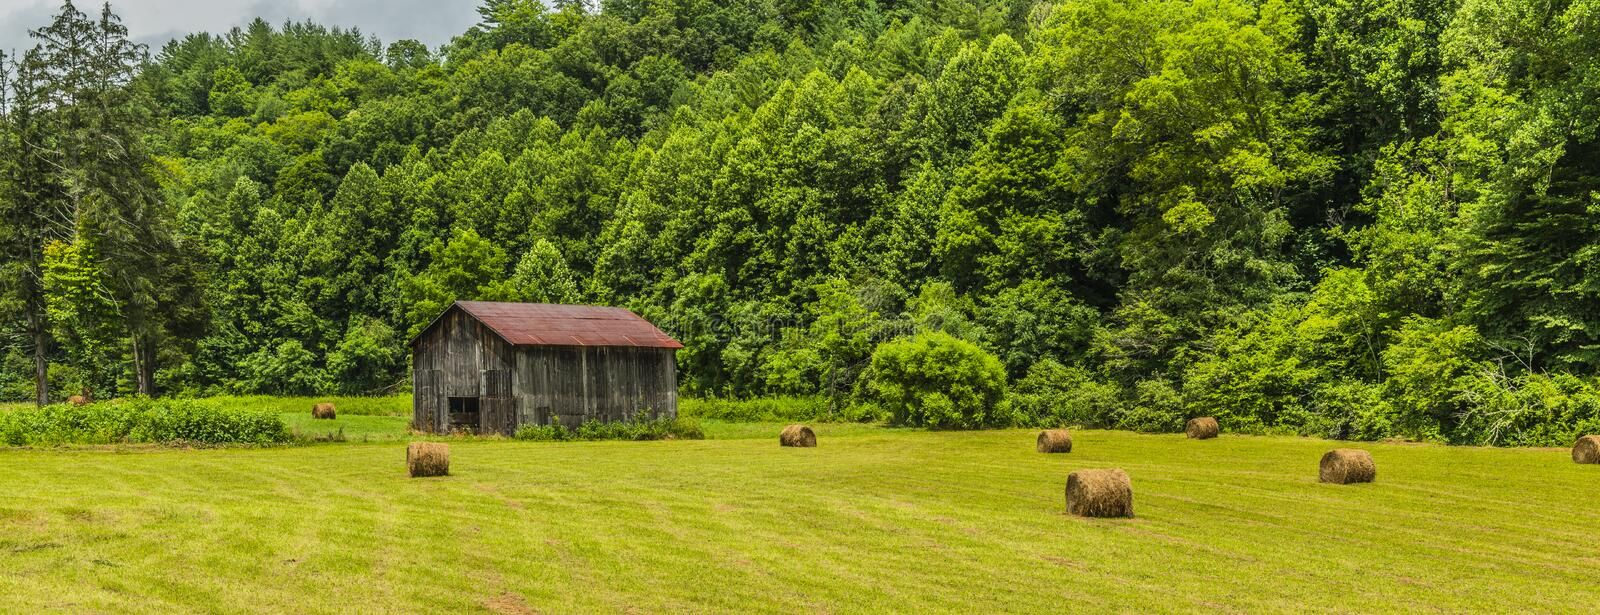 North Carolina Barn With Round Bales in Field 1 stock images